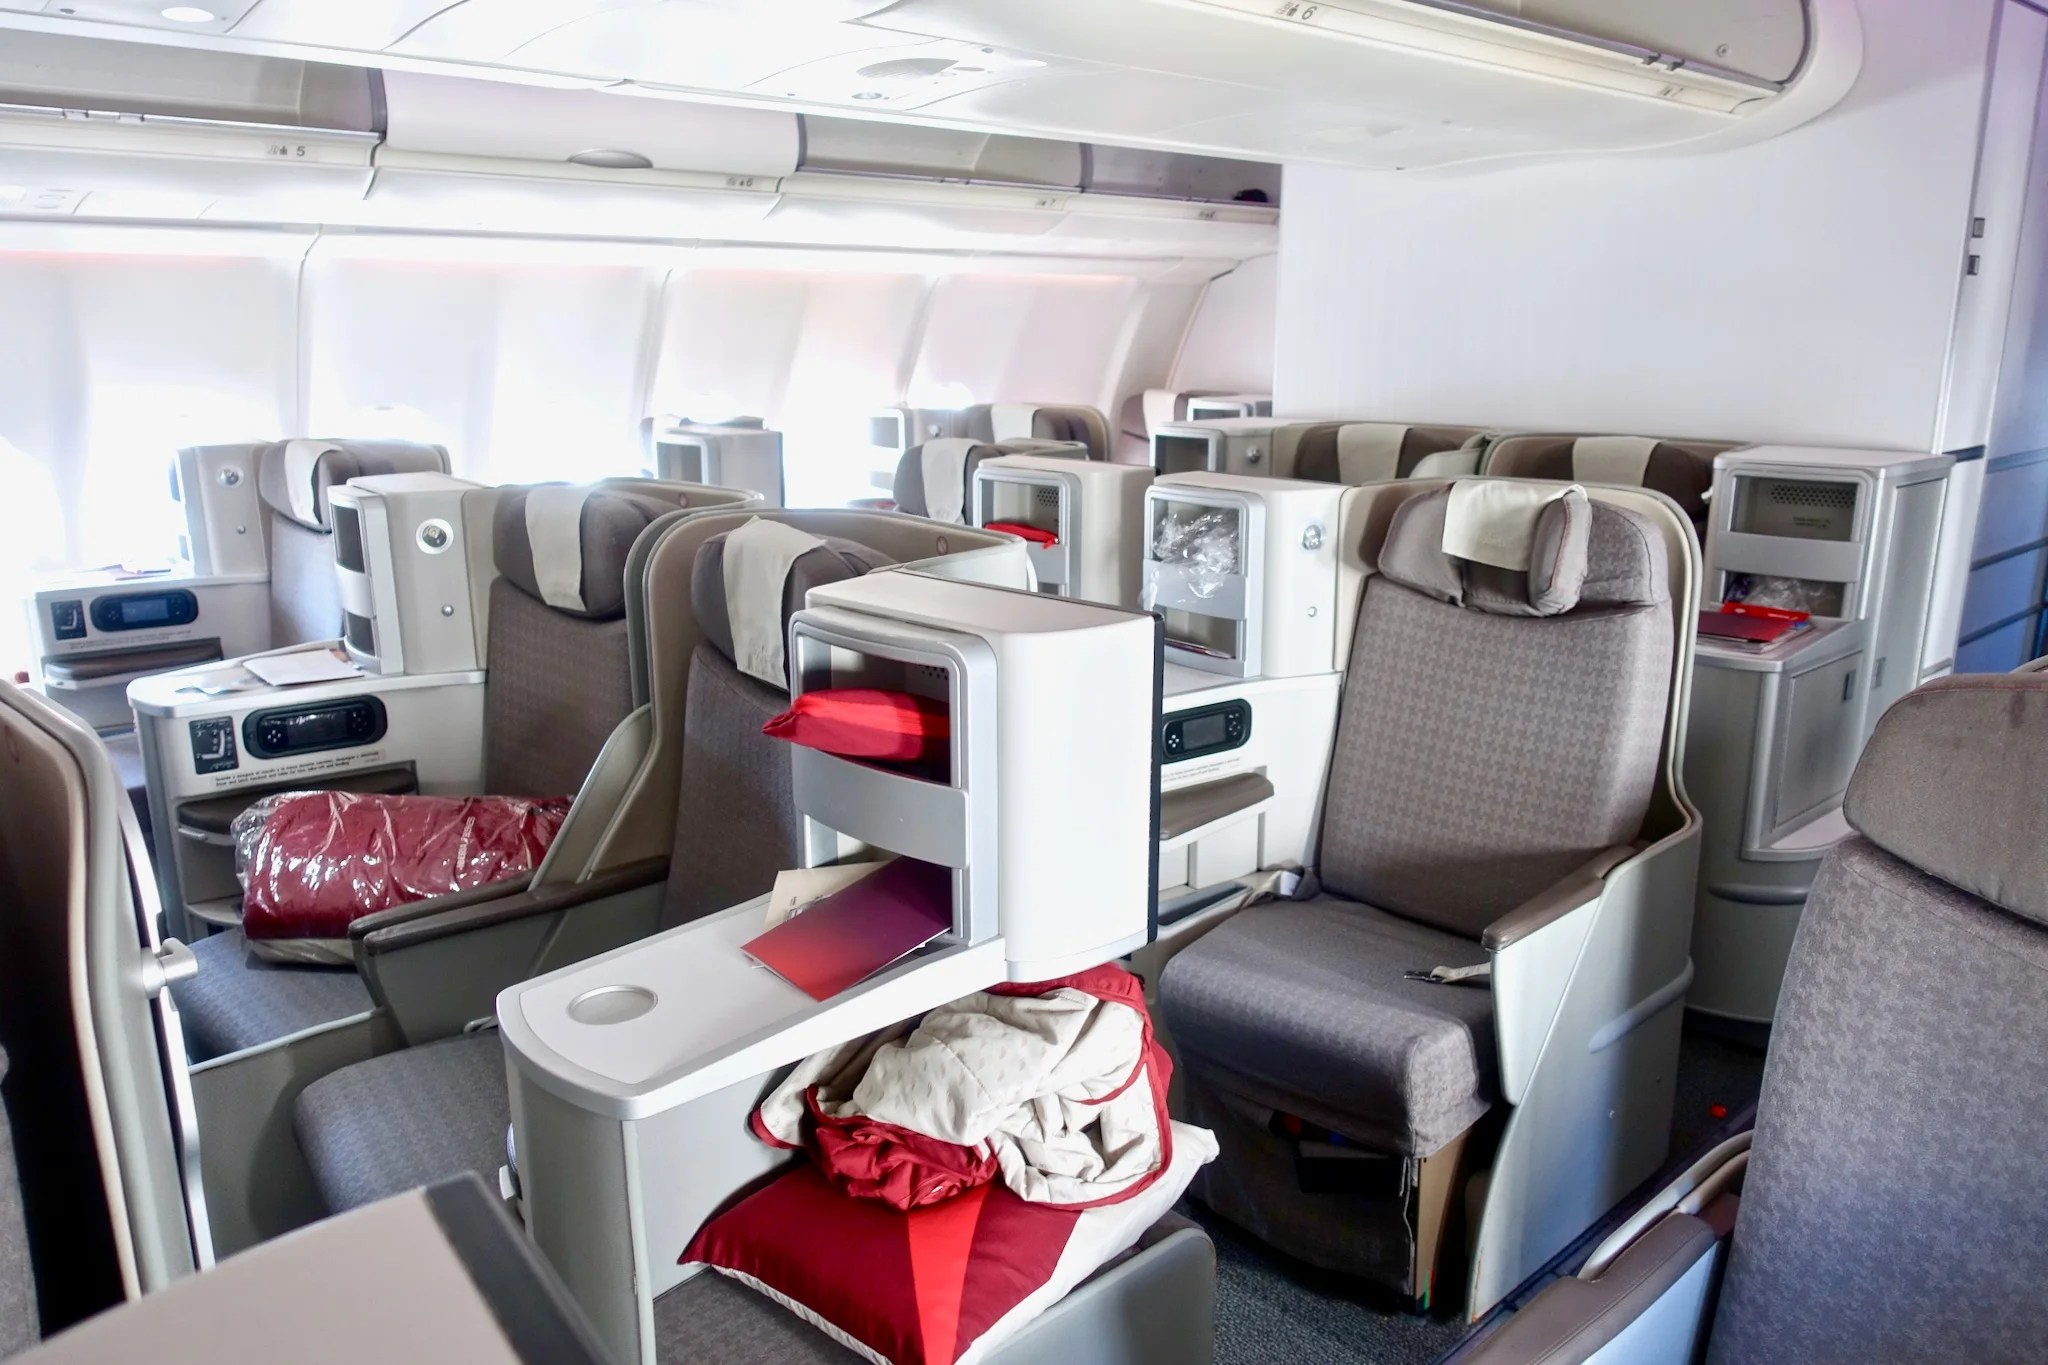 Is Business Class Worth It for Families?